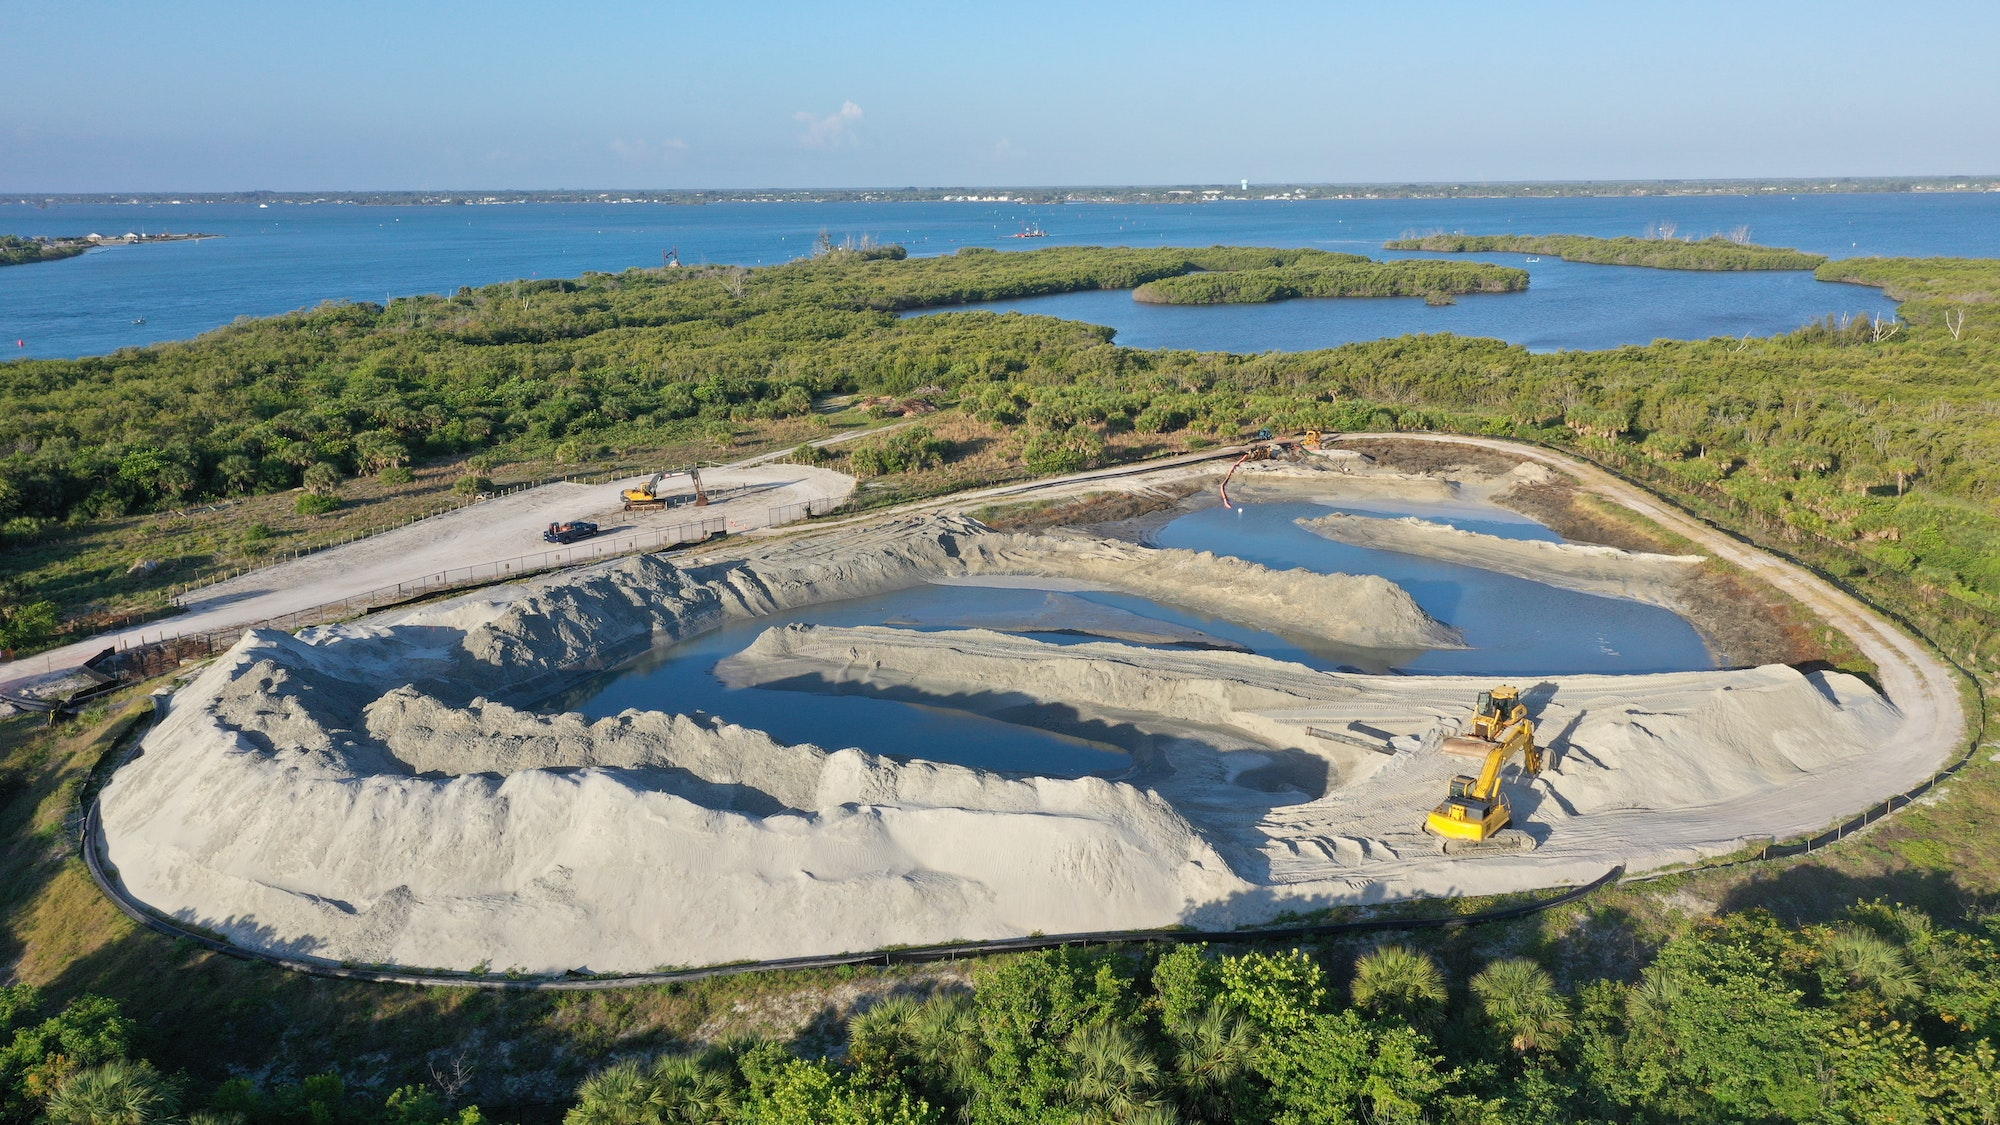 aerial view of equipment and mounds of sand in a sand storage site